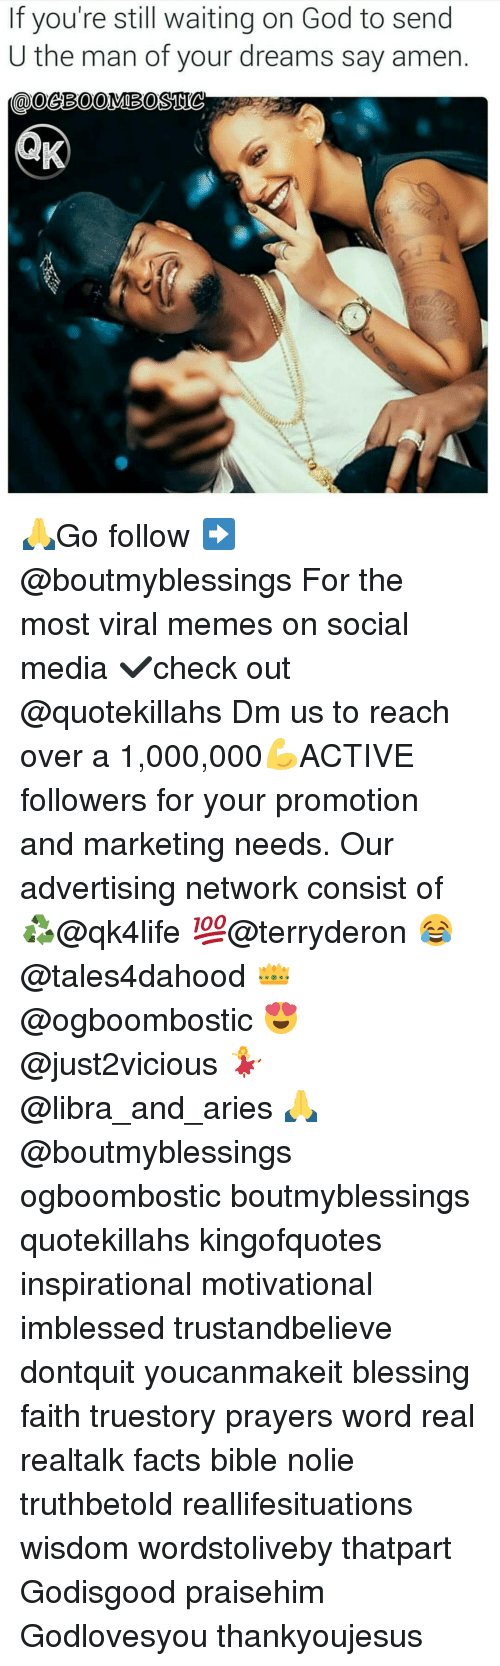 Advertise Network: If you're still waiting on God to send  U the man of your dreams say amen. 🙏Go follow ➡@boutmyblessings For the most viral memes on social media ✔check out @quotekillahs Dm us to reach over a 1,000,000💪ACTIVE followers for your promotion and marketing needs. Our advertising network consist of ♻@qk4life 💯@terryderon 😂@tales4dahood 👑@ogboombostic 😍@just2vicious 💃@libra_and_aries 🙏@boutmyblessings ogboombostic boutmyblessings quotekillahs kingofquotes inspirational motivational imblessed trustandbelieve dontquit youcanmakeit blessing faith truestory prayers word real realtalk facts bible nolie truthbetold reallifesituations wisdom wordstoliveby thatpart Godisgood praisehim Godlovesyou thankyoujesus